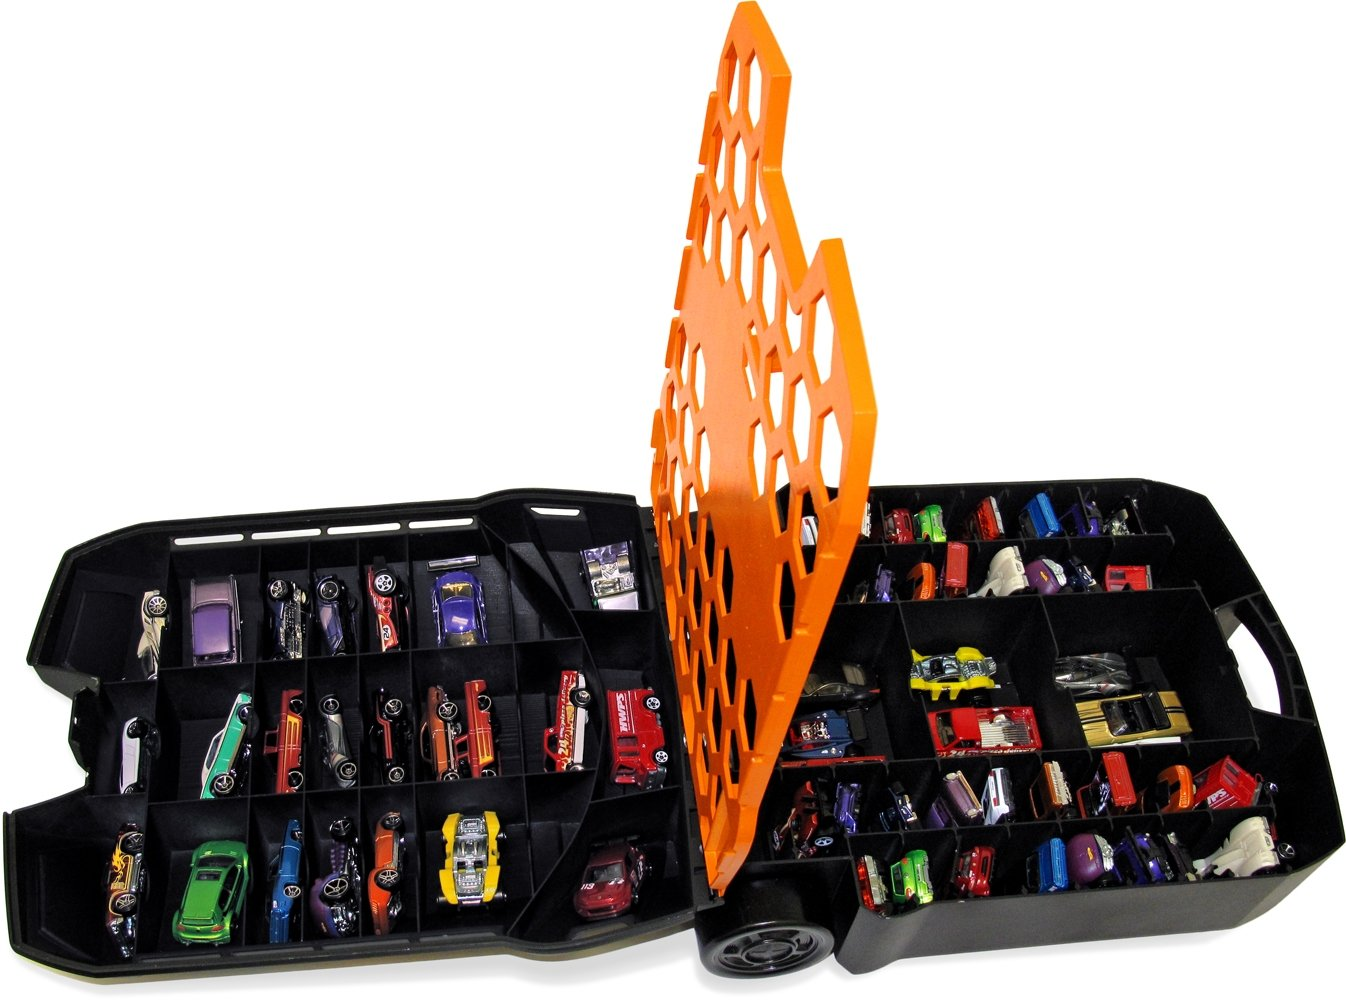 Buy Tara Toys Hot Wheels 100 Car Rolling Storage Case With